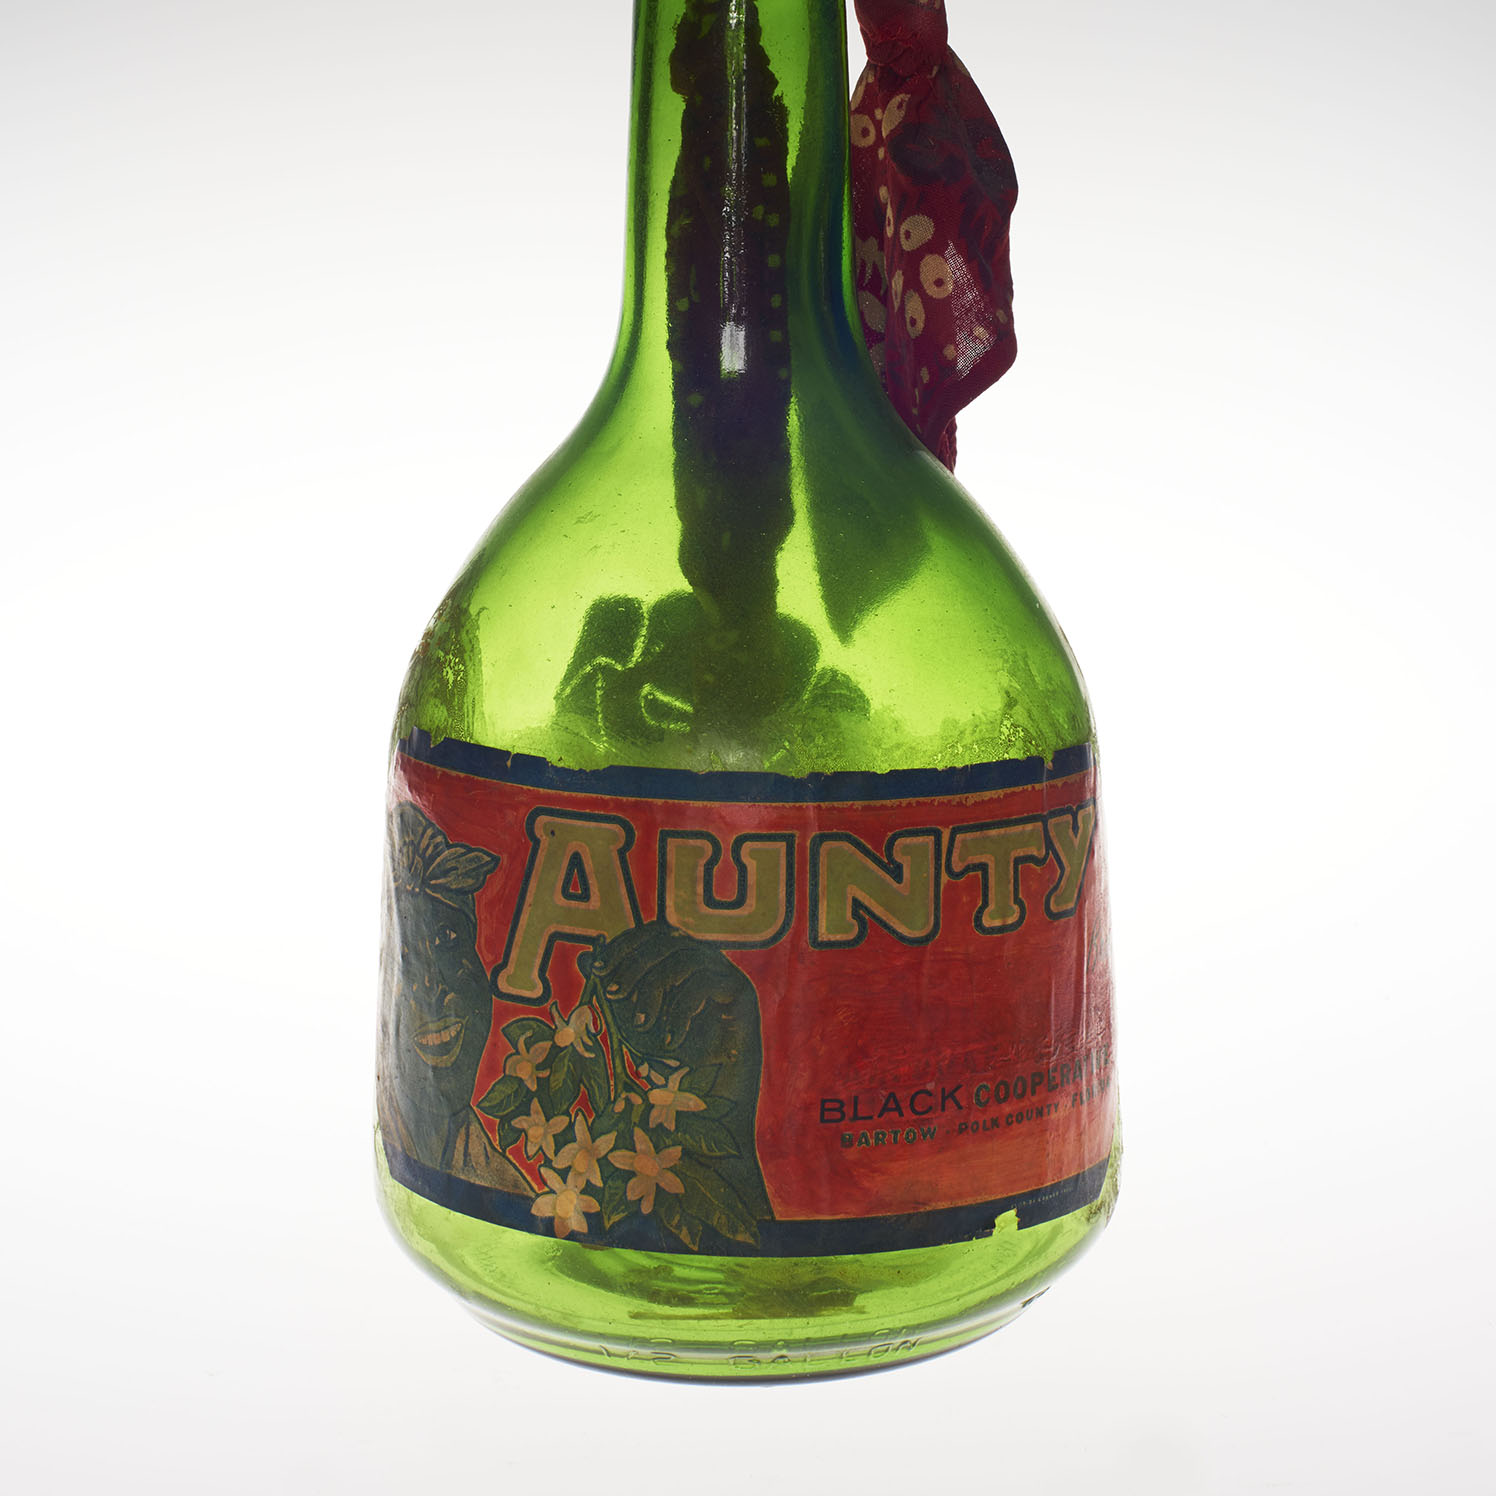 <p>Betye Saar (American, born 1926). <em>Liberation of Aunt Jemima: Cocktail</em>, 1973. Mixed-media assemblage, 12 x 18 in. (30.5 x 45.7 cm). Private collection. &copy; Betye Saar, courtesy the artist and Roberts &amp; Tilton, Culver City, California. (Photo: Jonathan Dorado, Brooklyn Museum)</p>